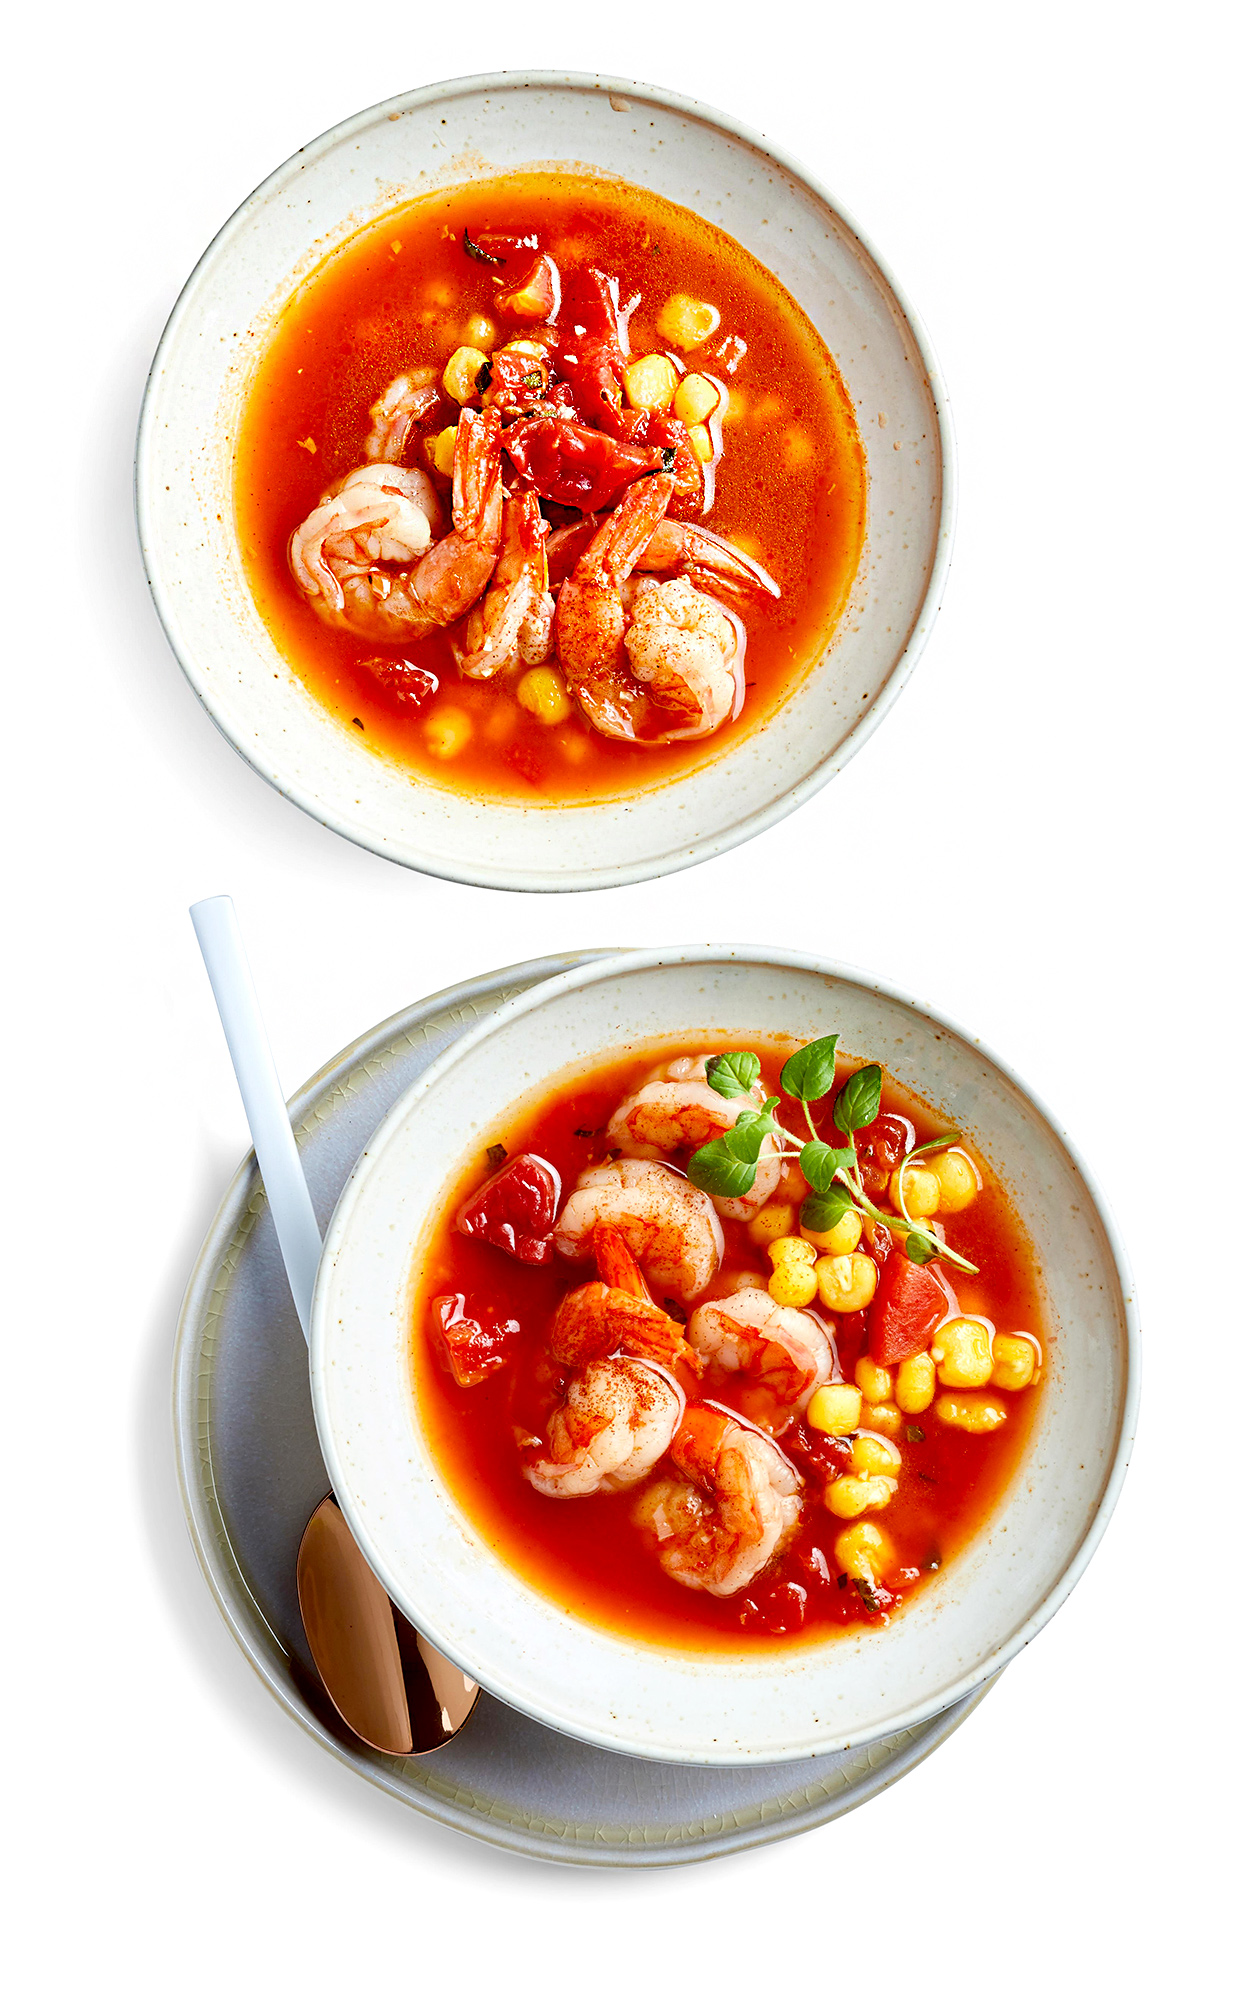 Shrimp and Hominy Stew